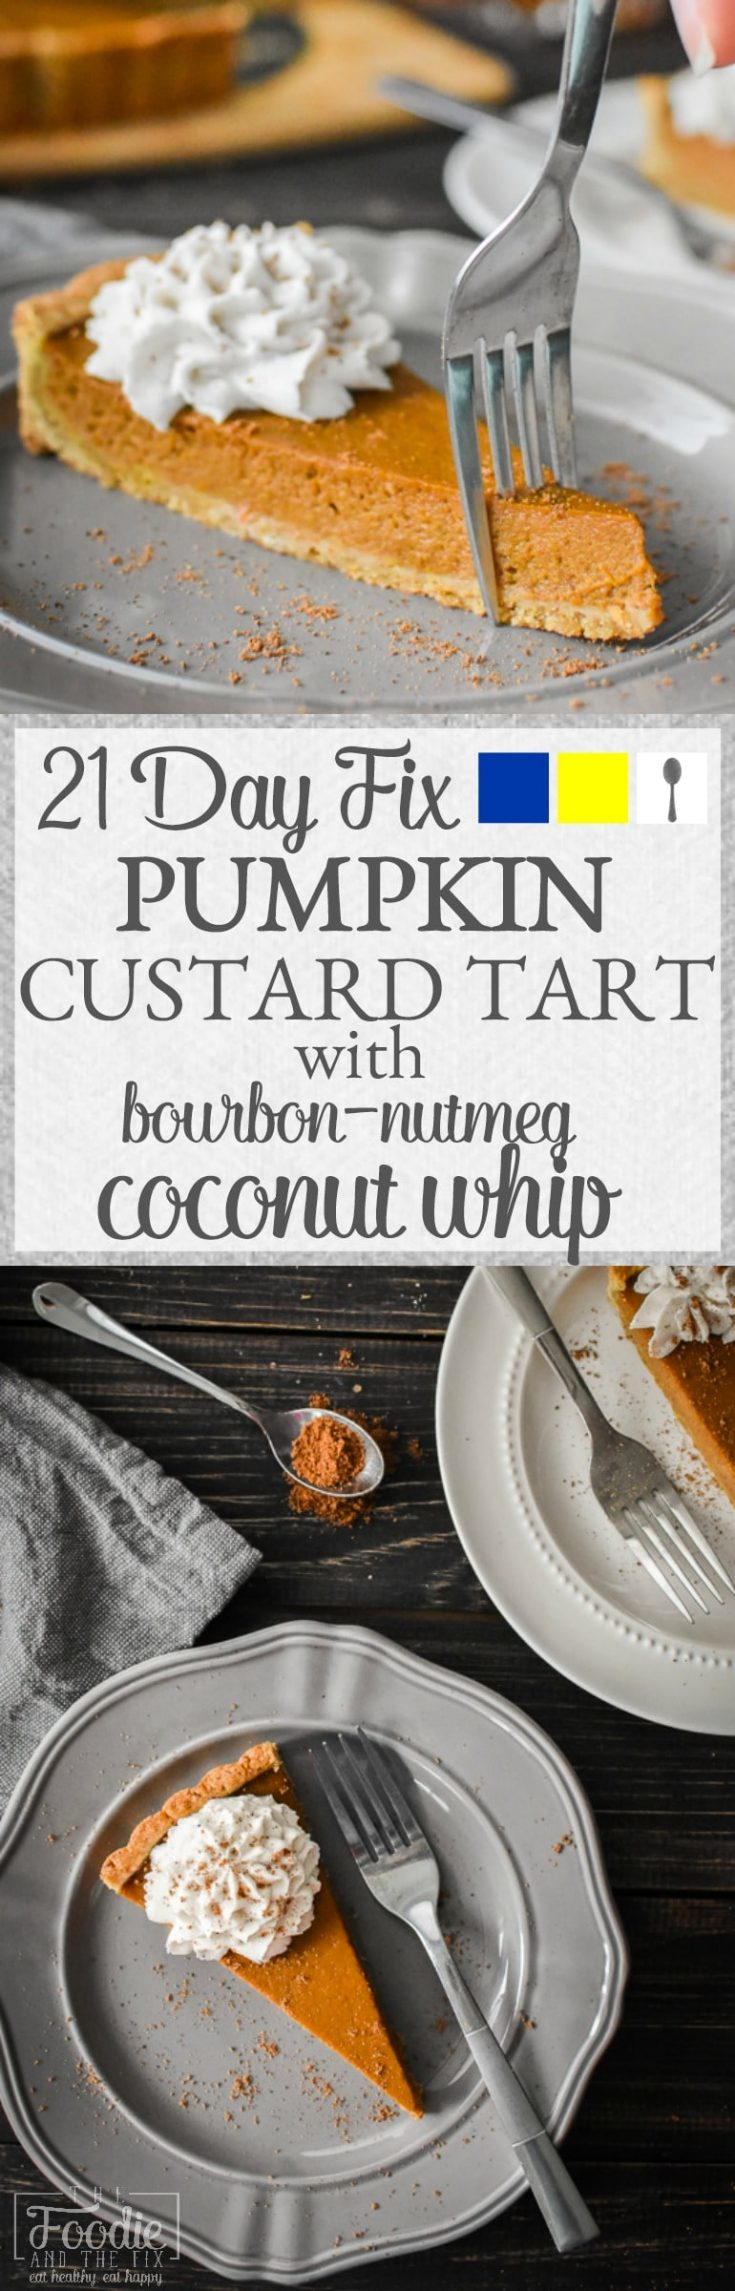 This 21 Day Fix pumpkin custard tart is my easy, delicious and healthy take on pumpkin pie. With it's pecan crust and bourbon-nutmeg coconut whip, it's the perfect dessert for Thanksgiving or any holiday!